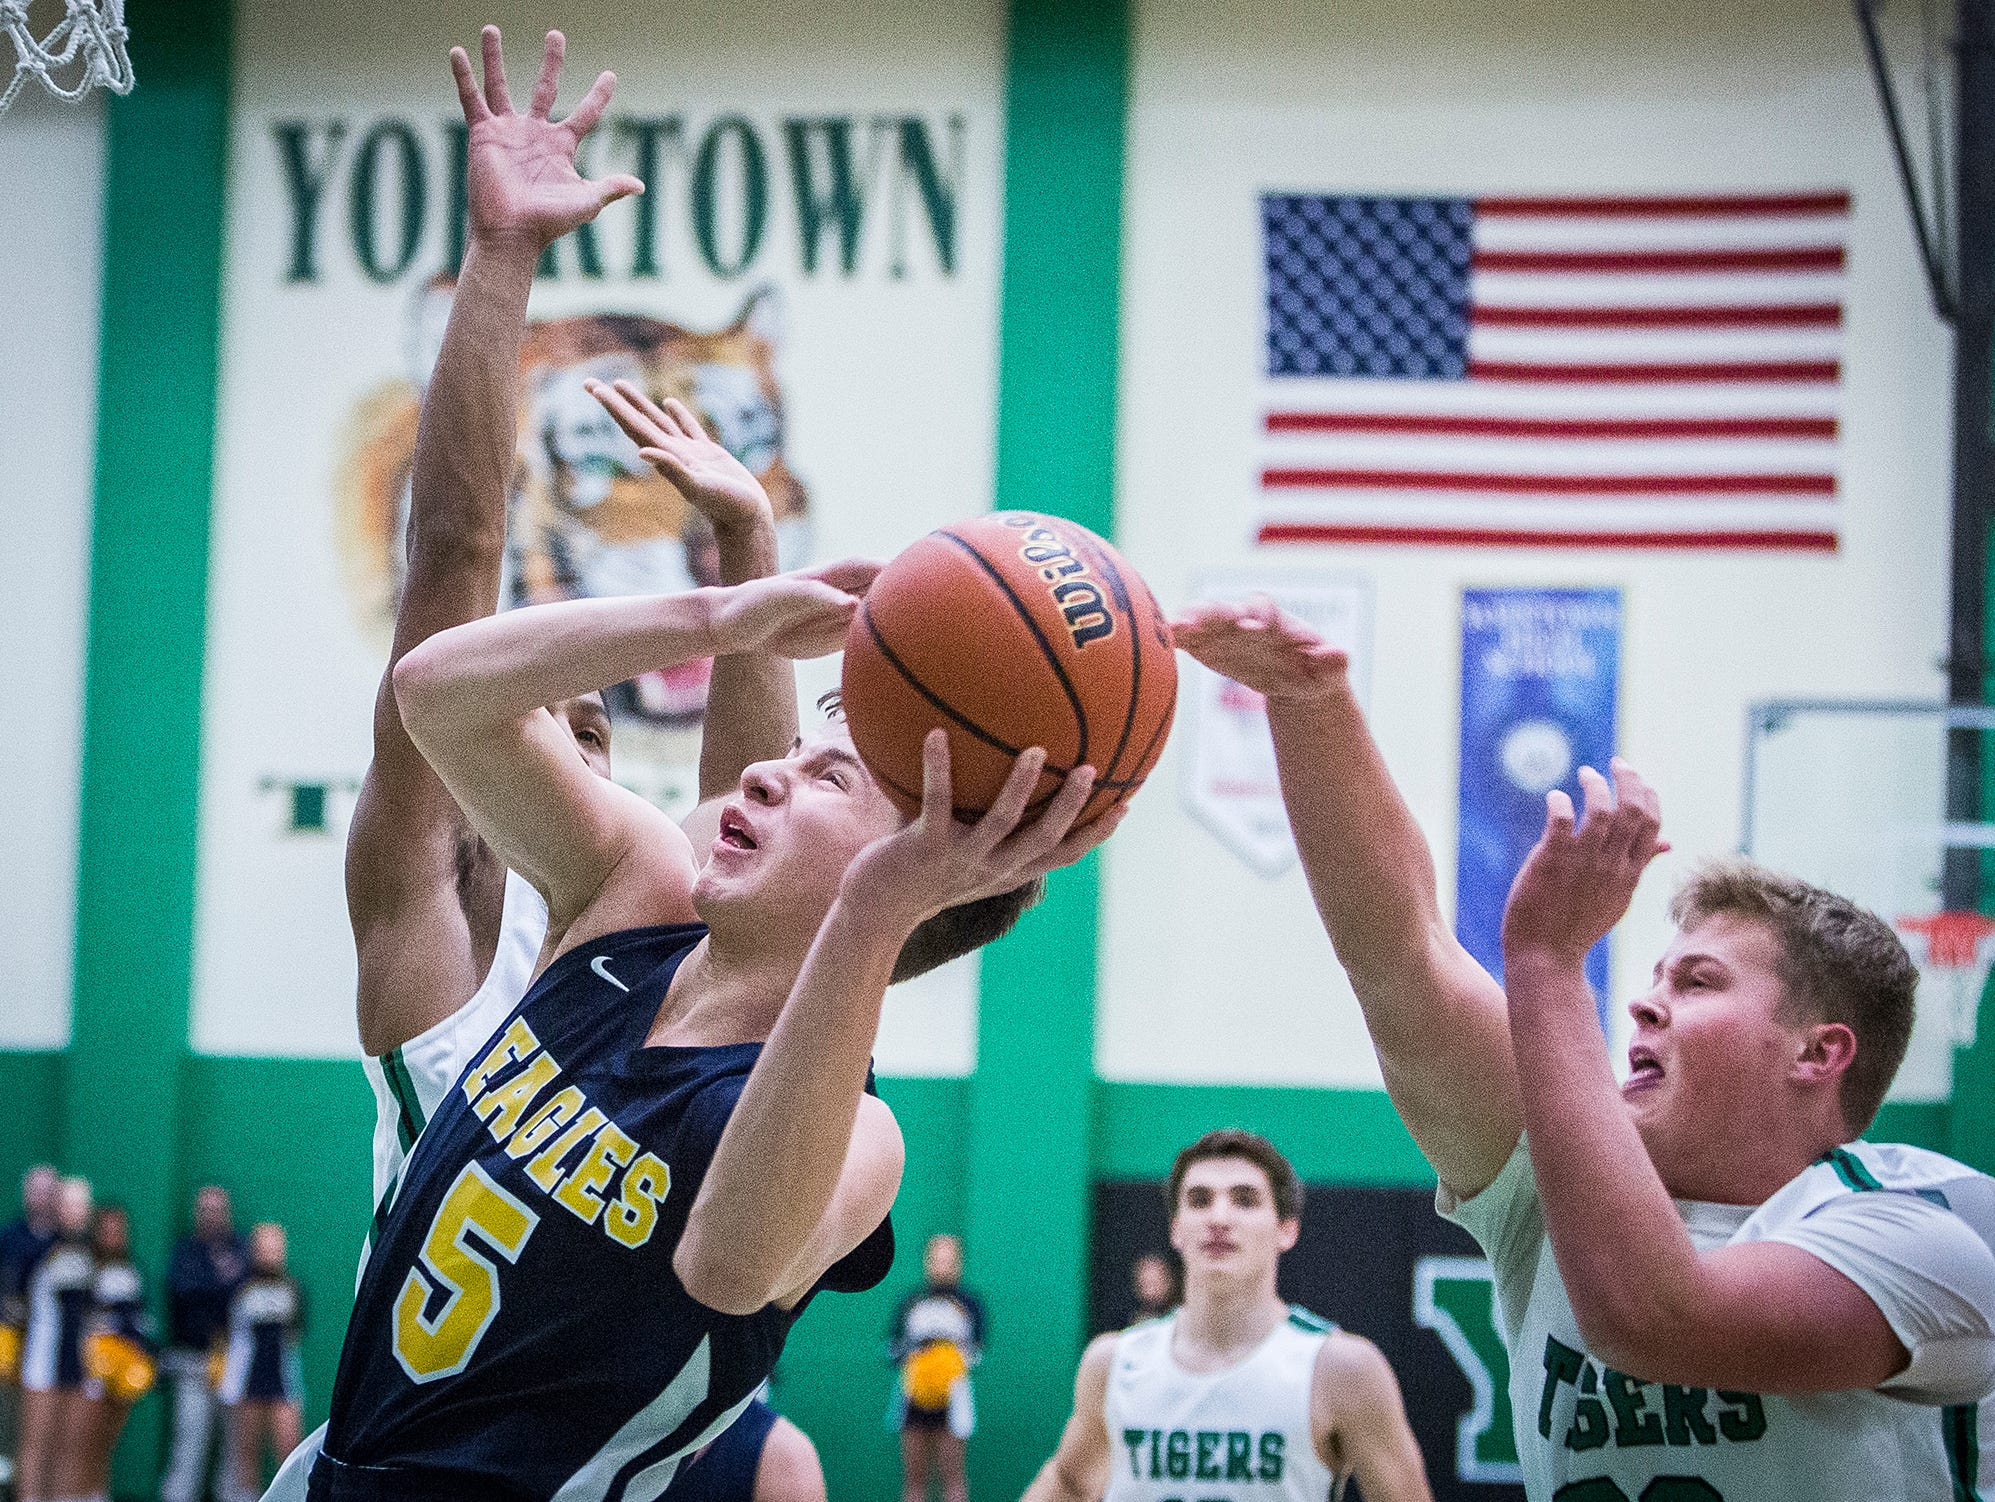 Delta's Josh Bryan looks to shoot past Yorktown's defense during their game at Yorktown High School Saturday, Dec. 7, 2018.